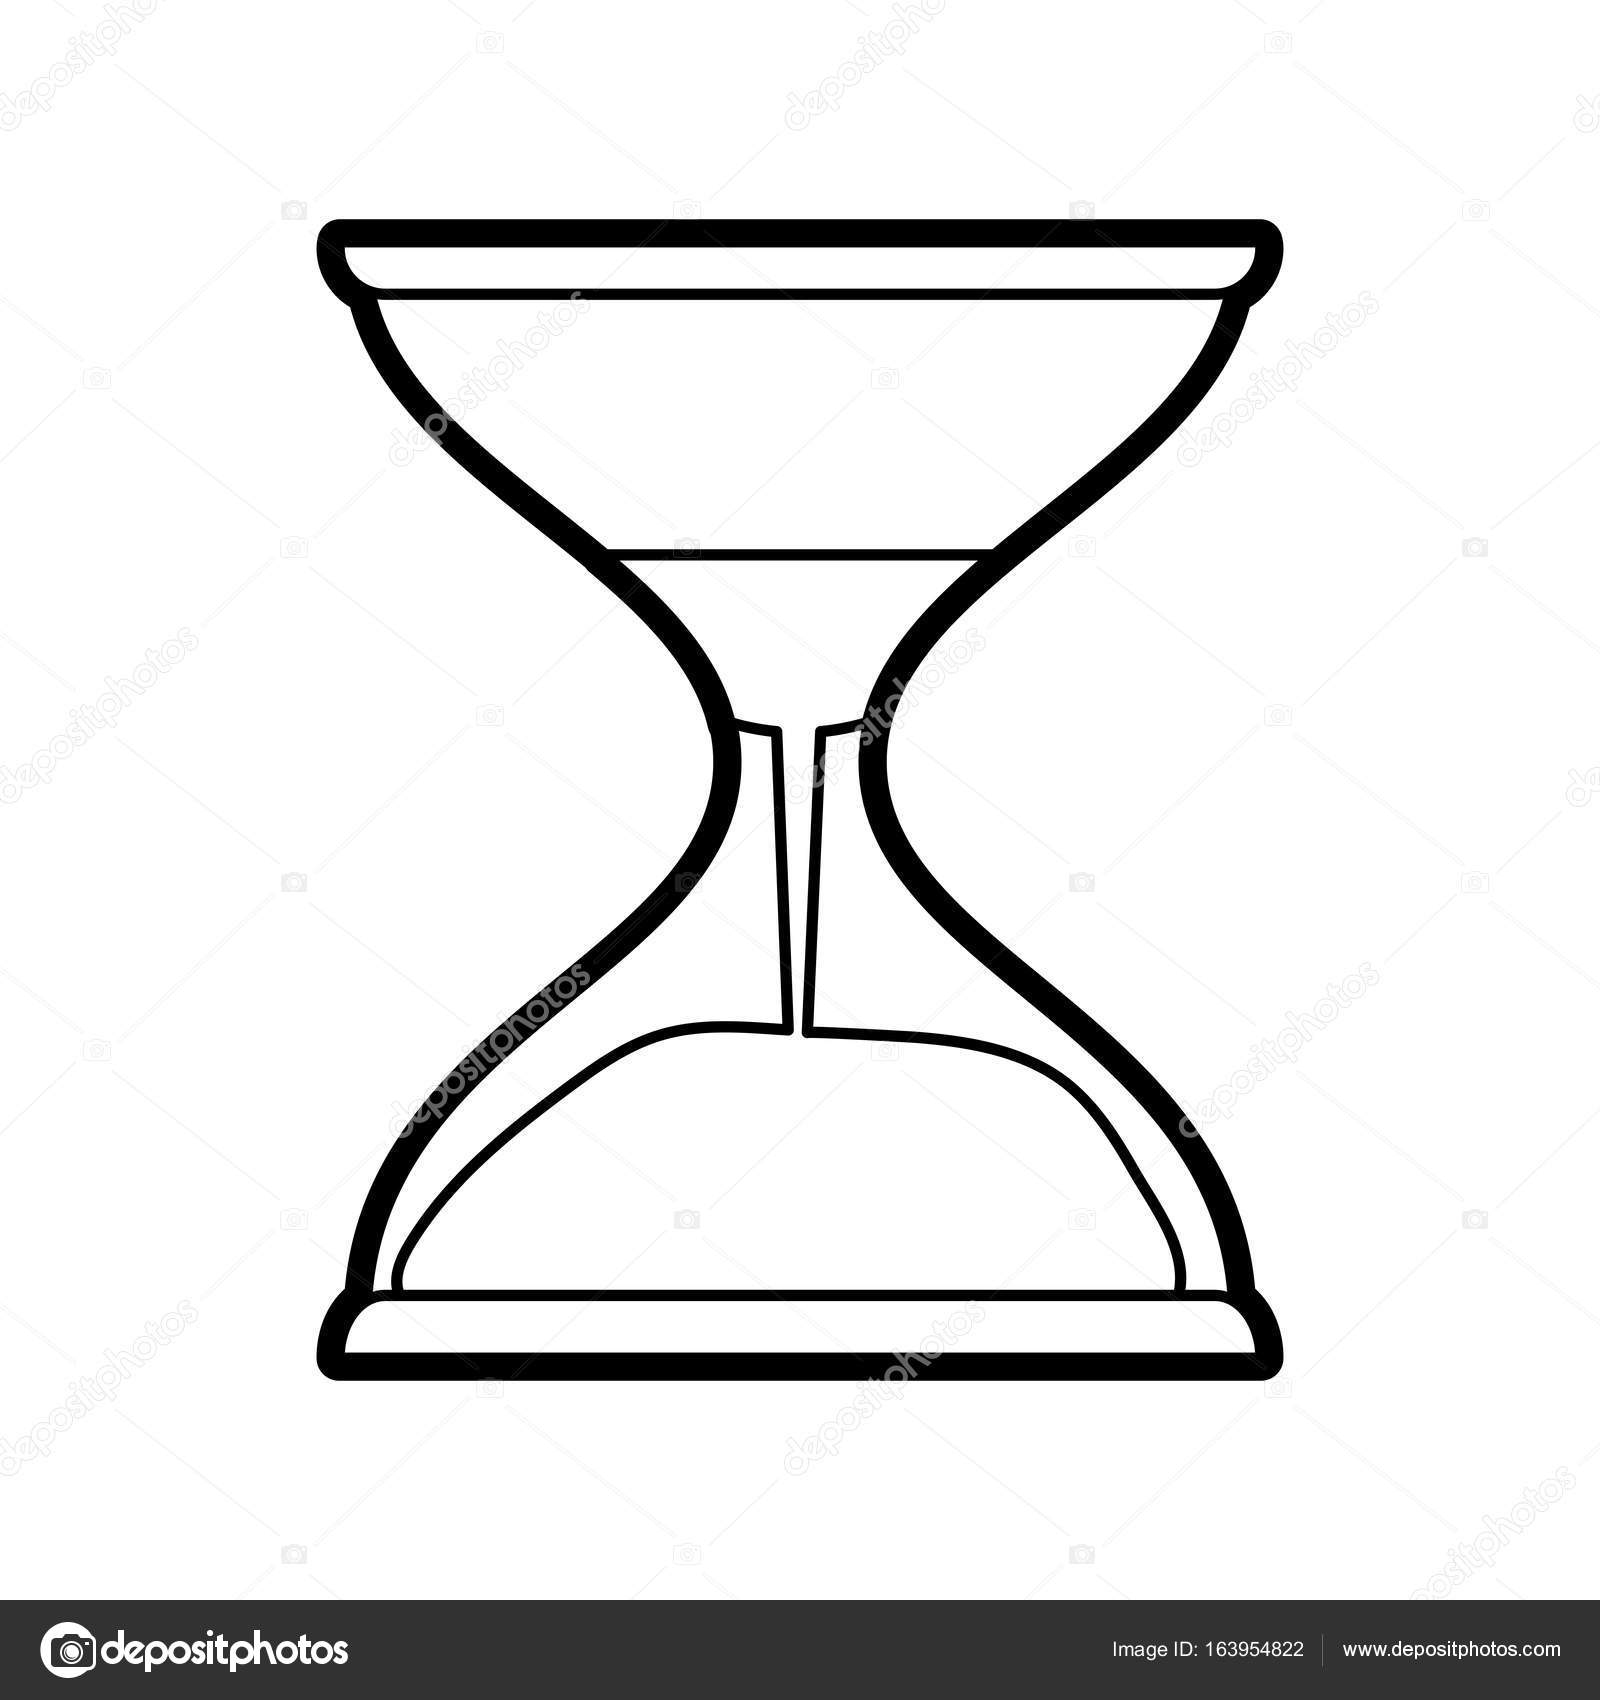 hourglass vector illustration stock vector jemastock 163954822 rh depositphotos com hourglass vector free download hourglass vector free download